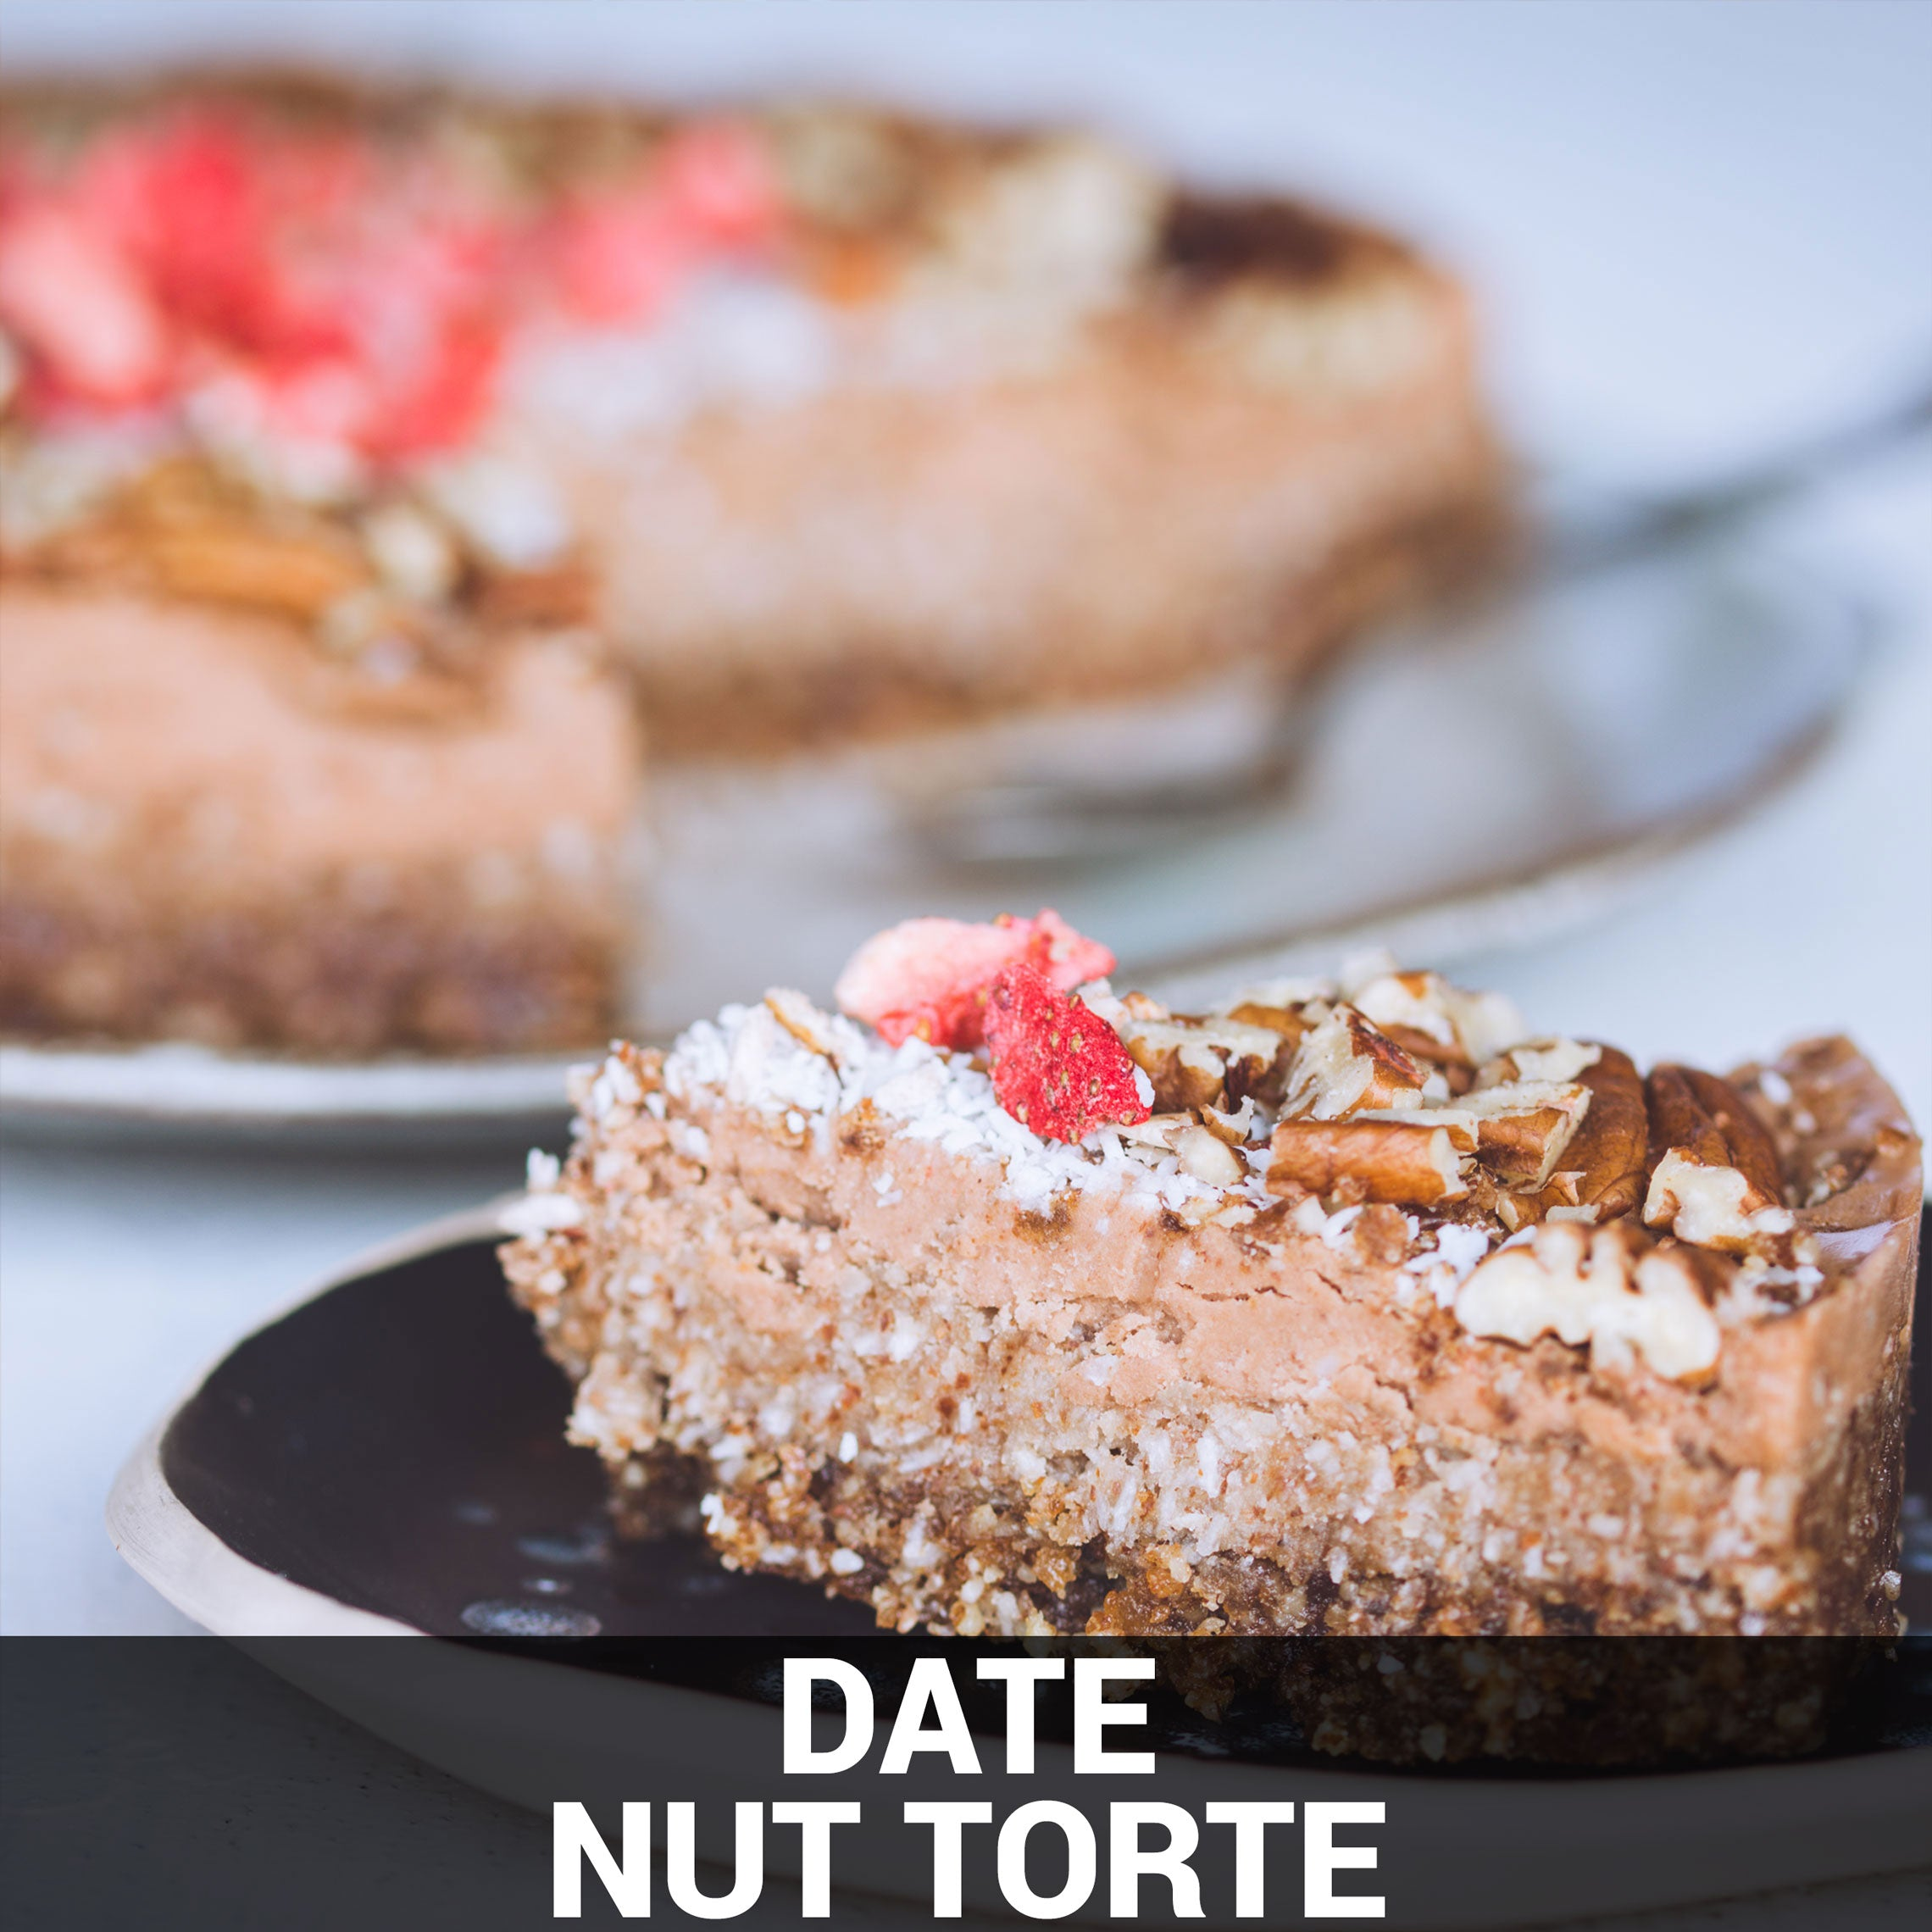 Date Nut Torte Recipe - Foods Alive